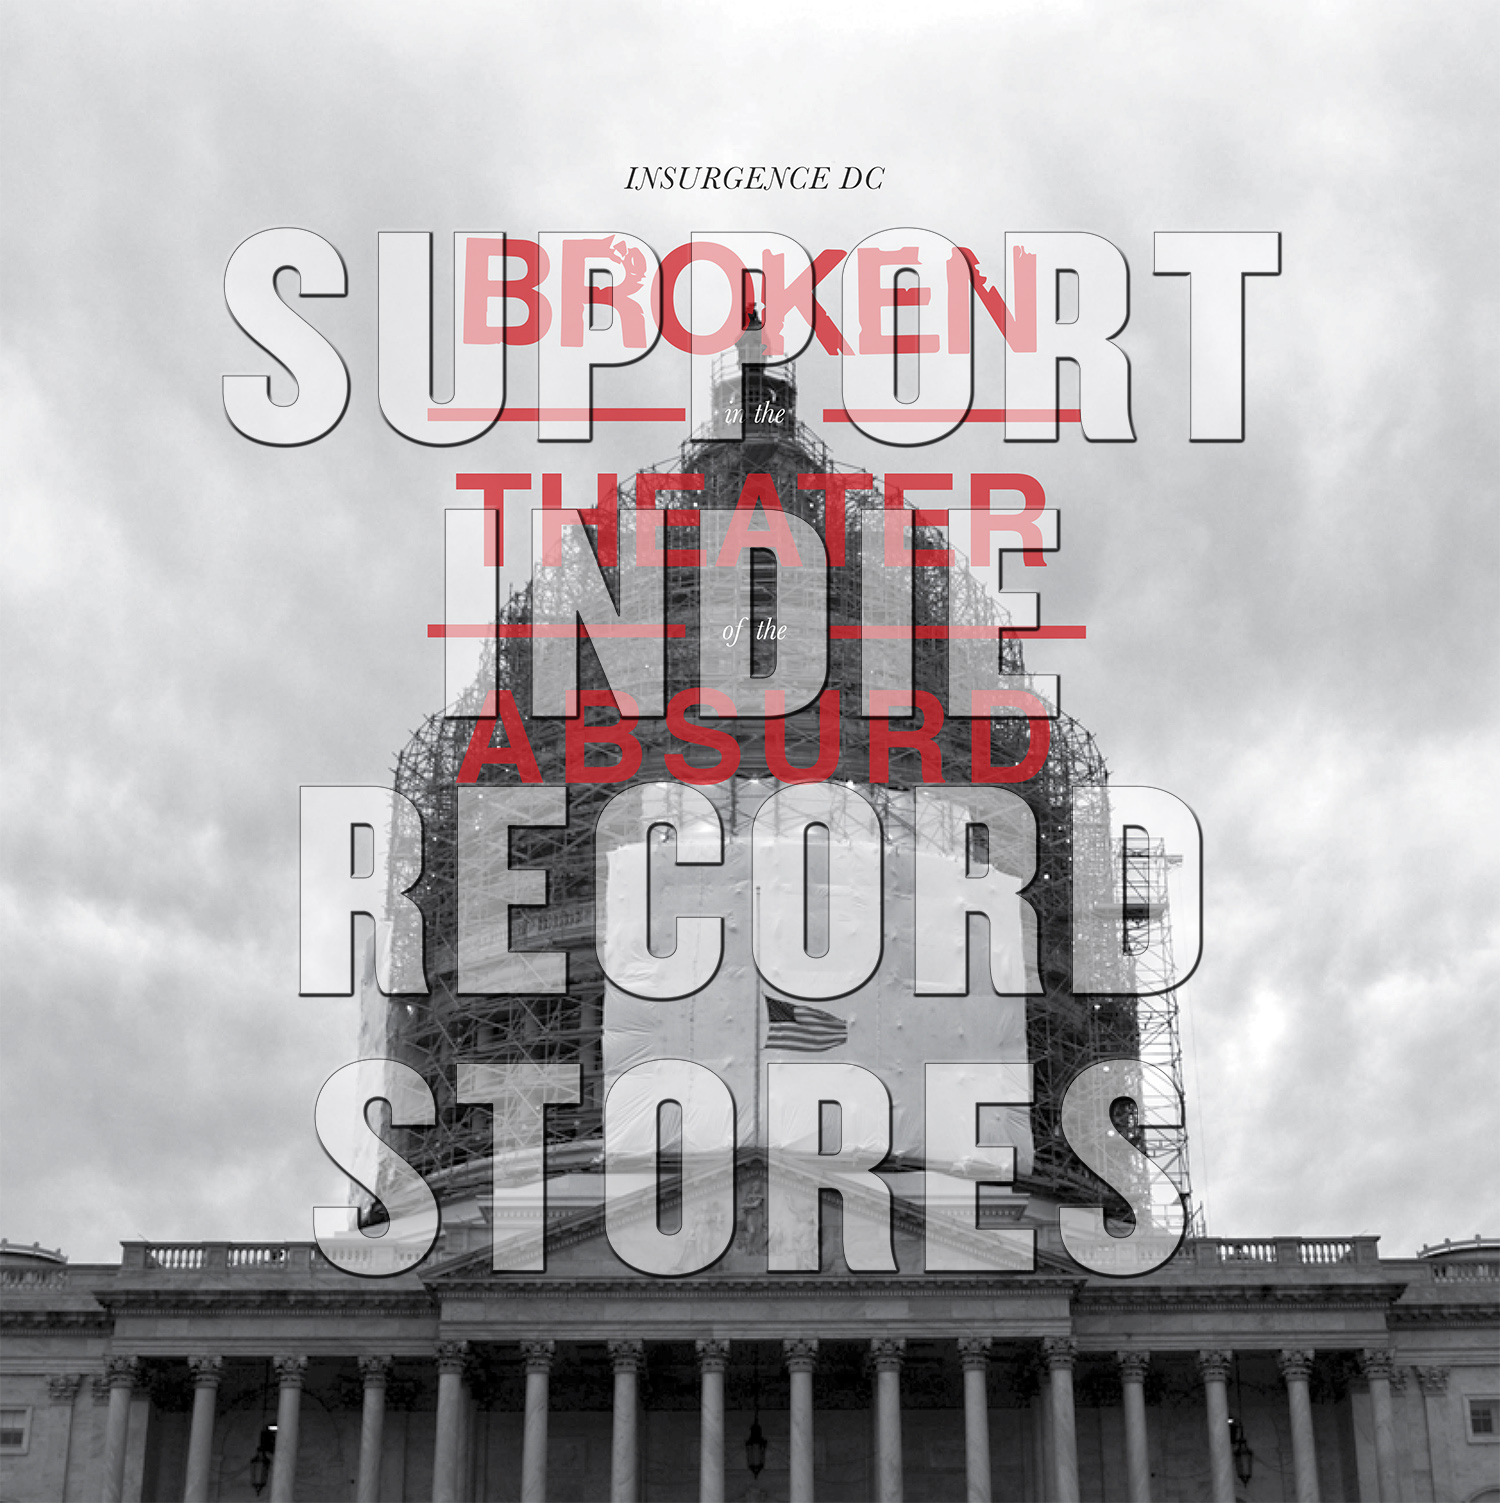 Insurgence DC - Broken In The Theater of the Absurd [RSD 2019]